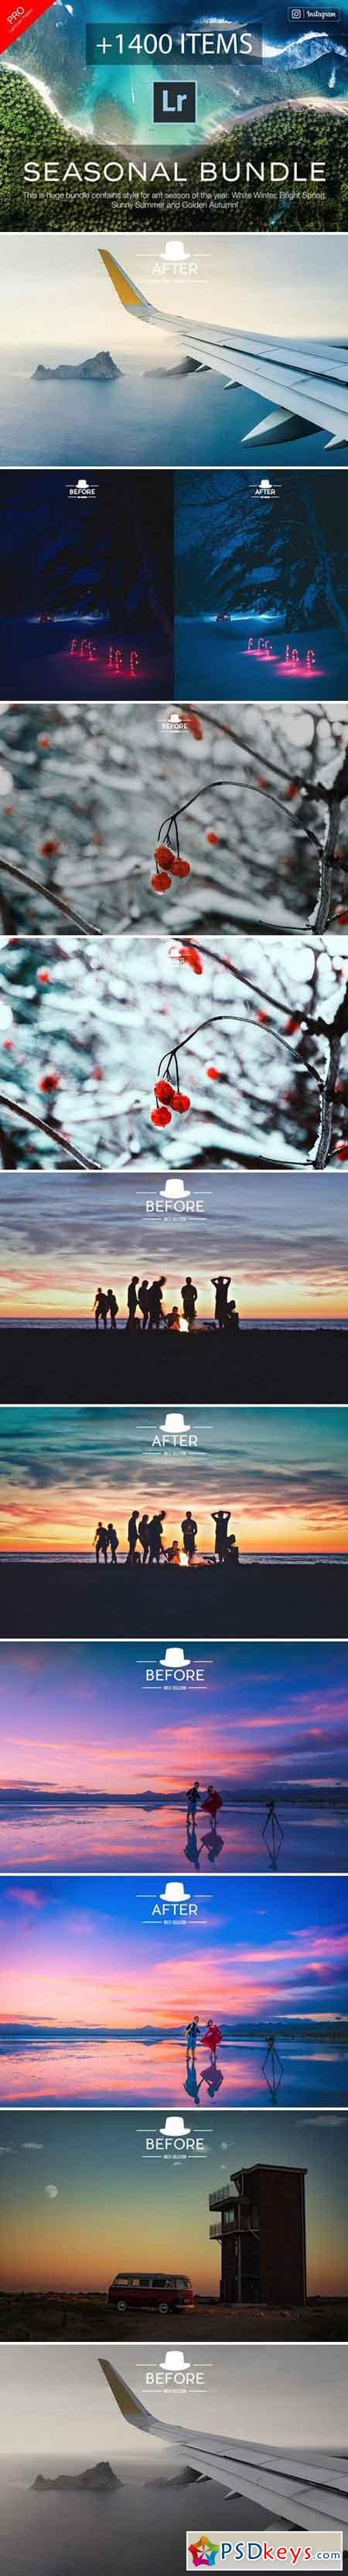 1400 Seasonal - Lightroom Presets 2138320